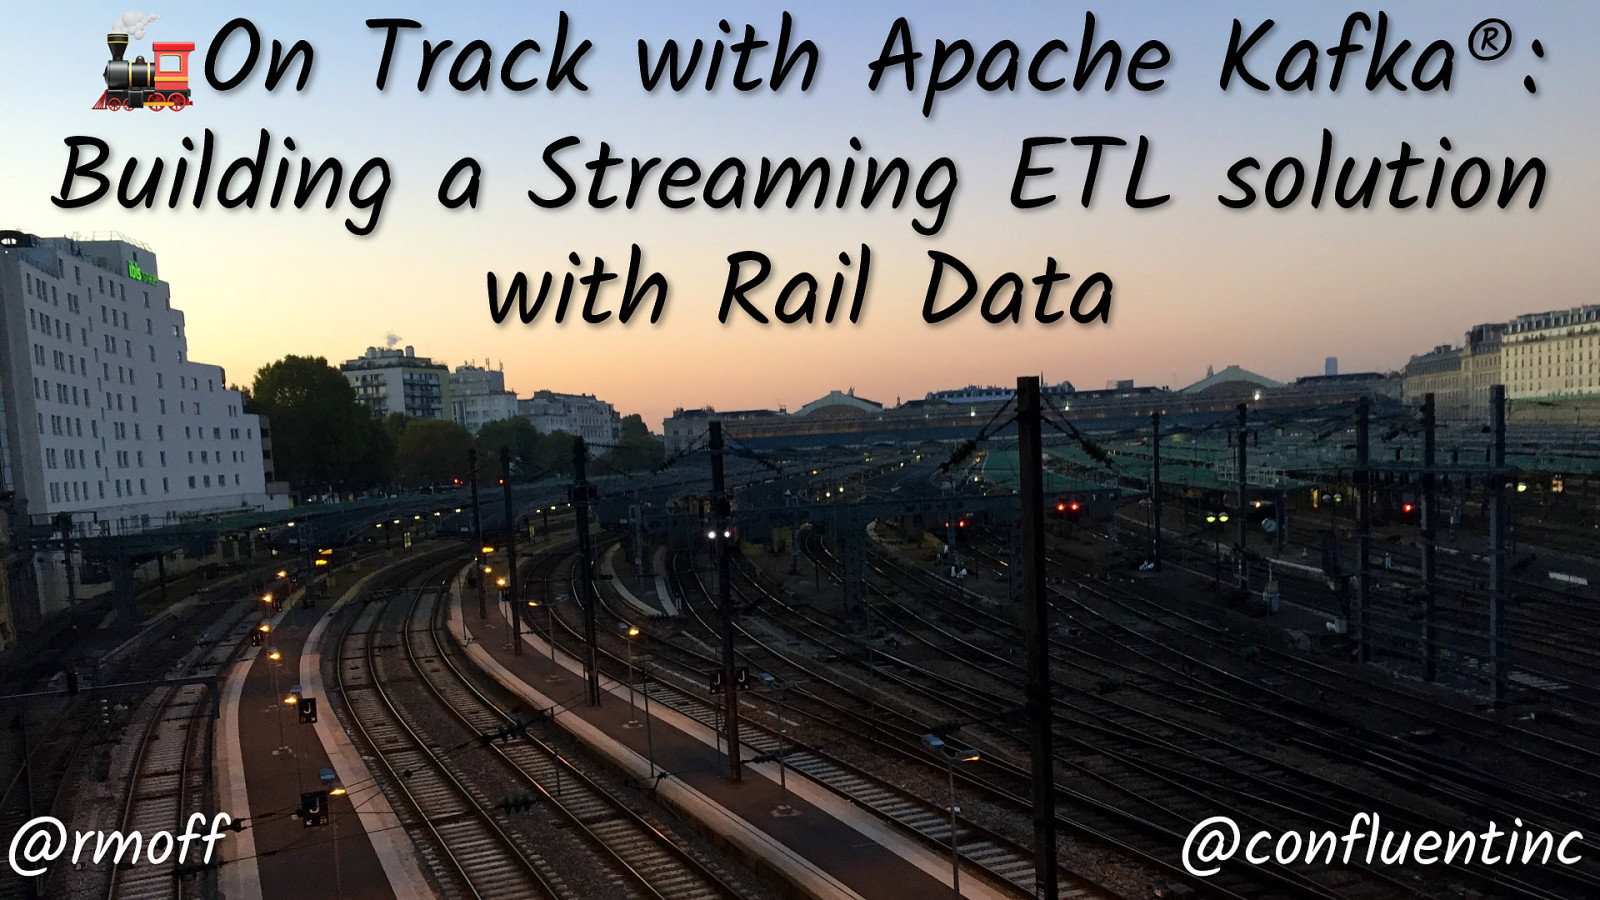 🚂 On Track with Apache Kafka: Building a Streaming ETL solution with Rail Data by Robin Moffatt